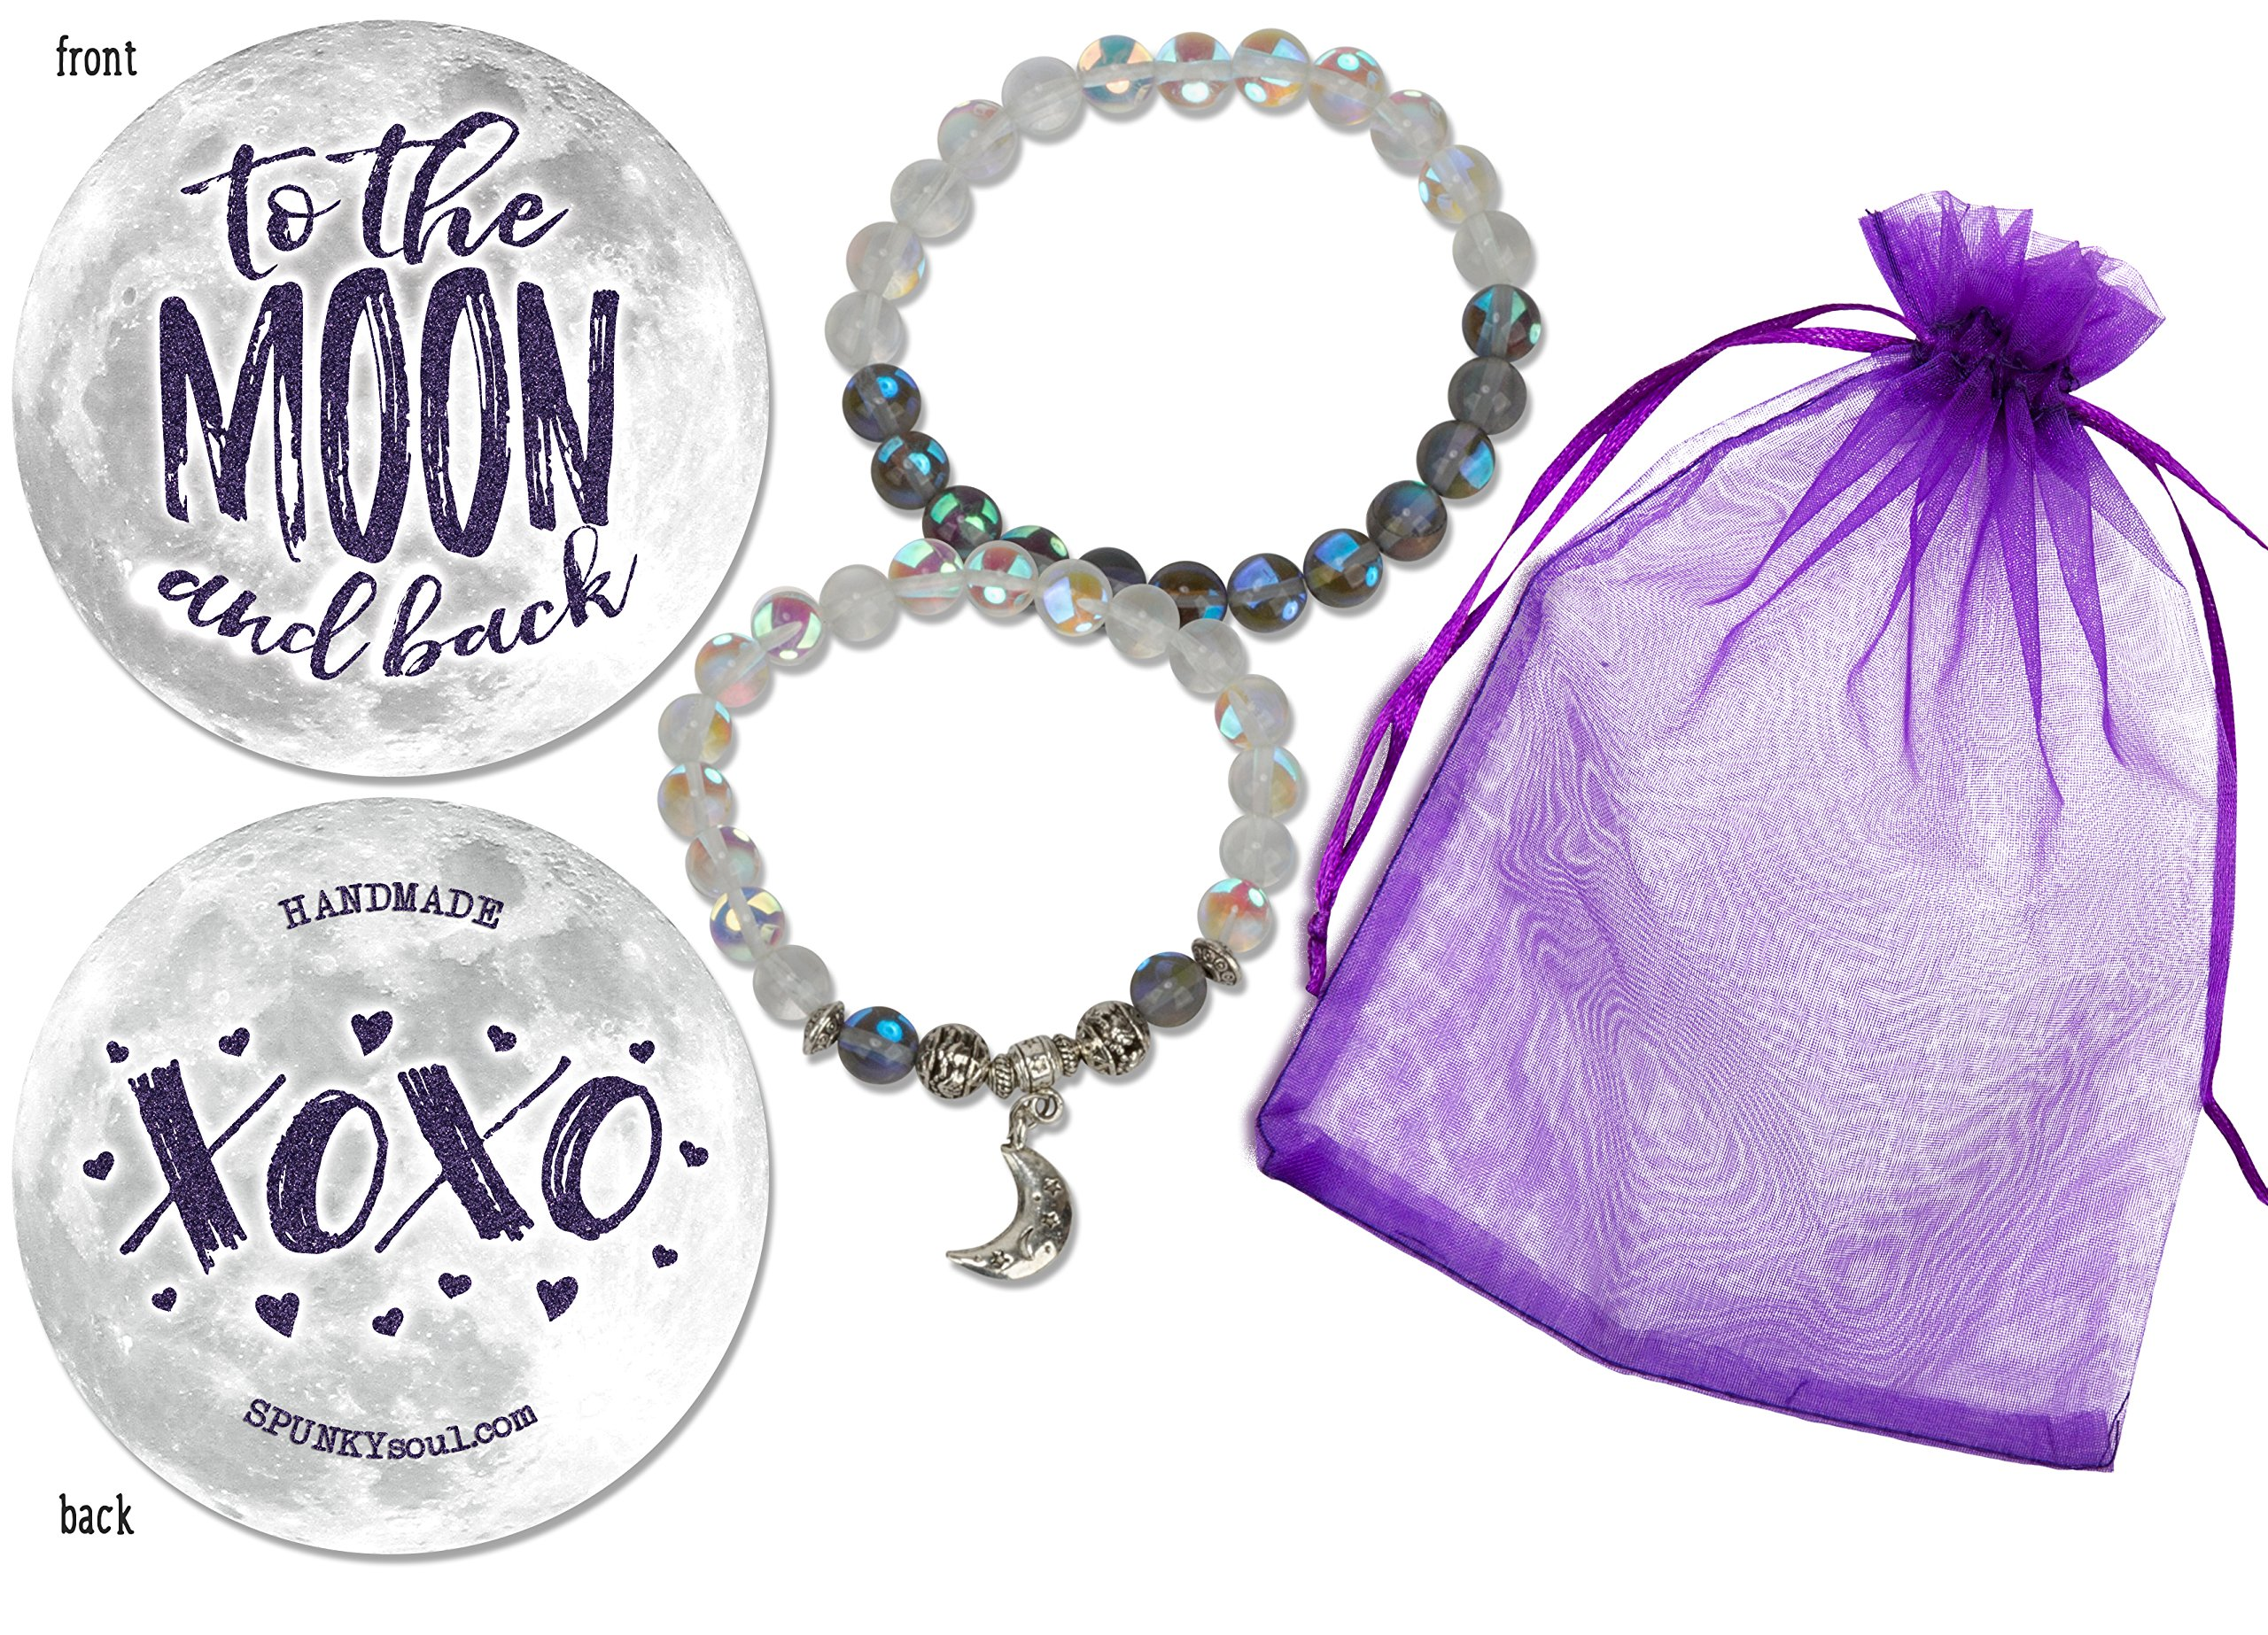 SPUNKYsoul New! Handmade Man-made Moonstone 2 Piece Set Love You To The Moon Bracelet Silver Charm for Women Collection